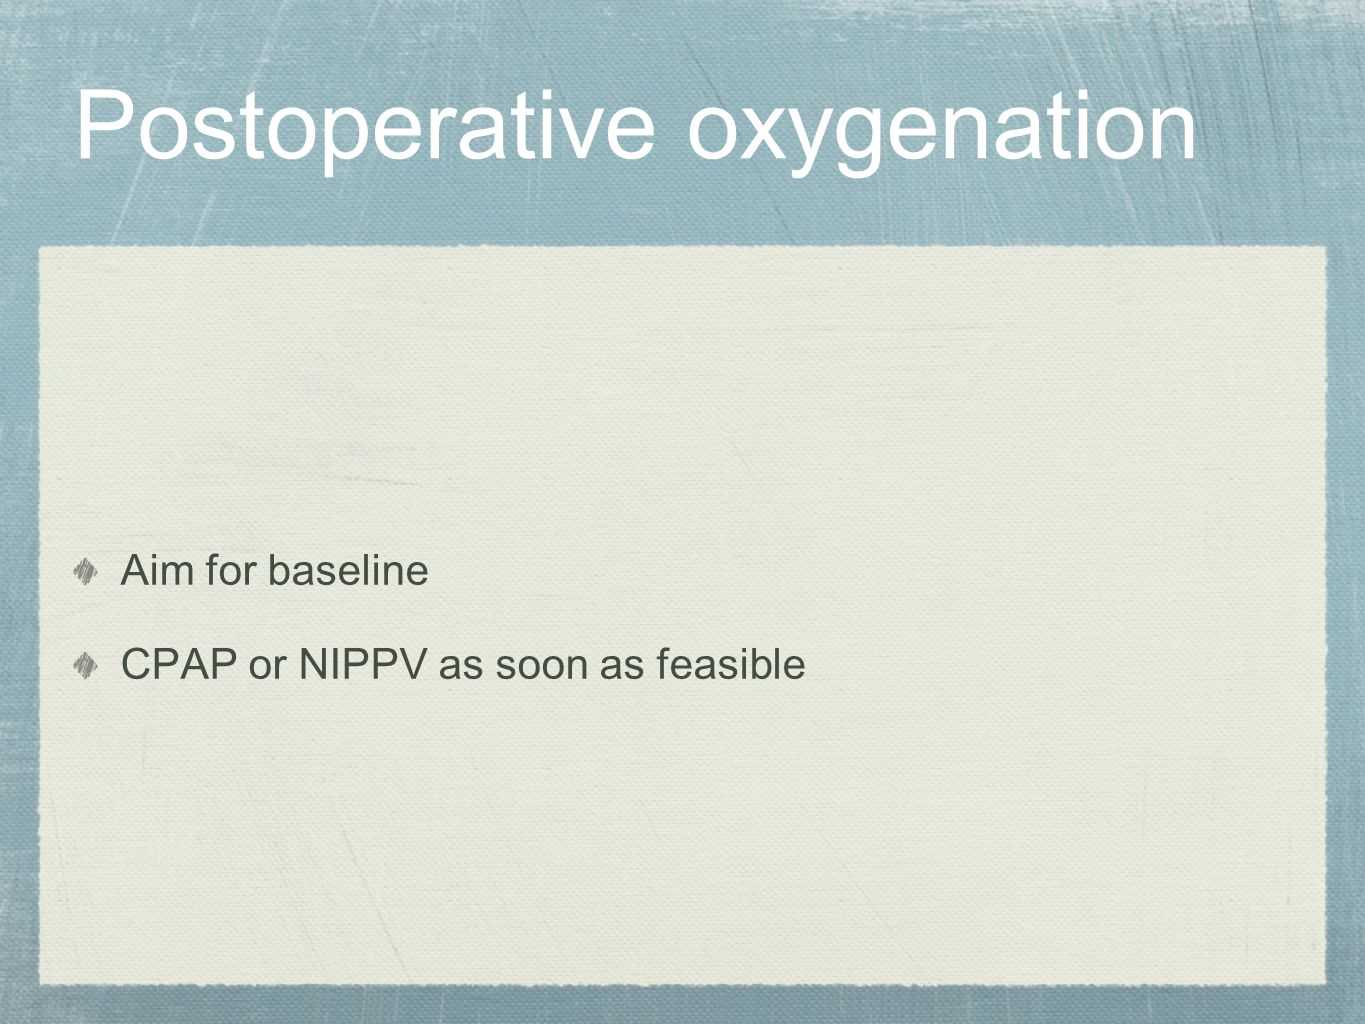 Postoperative oxygenation